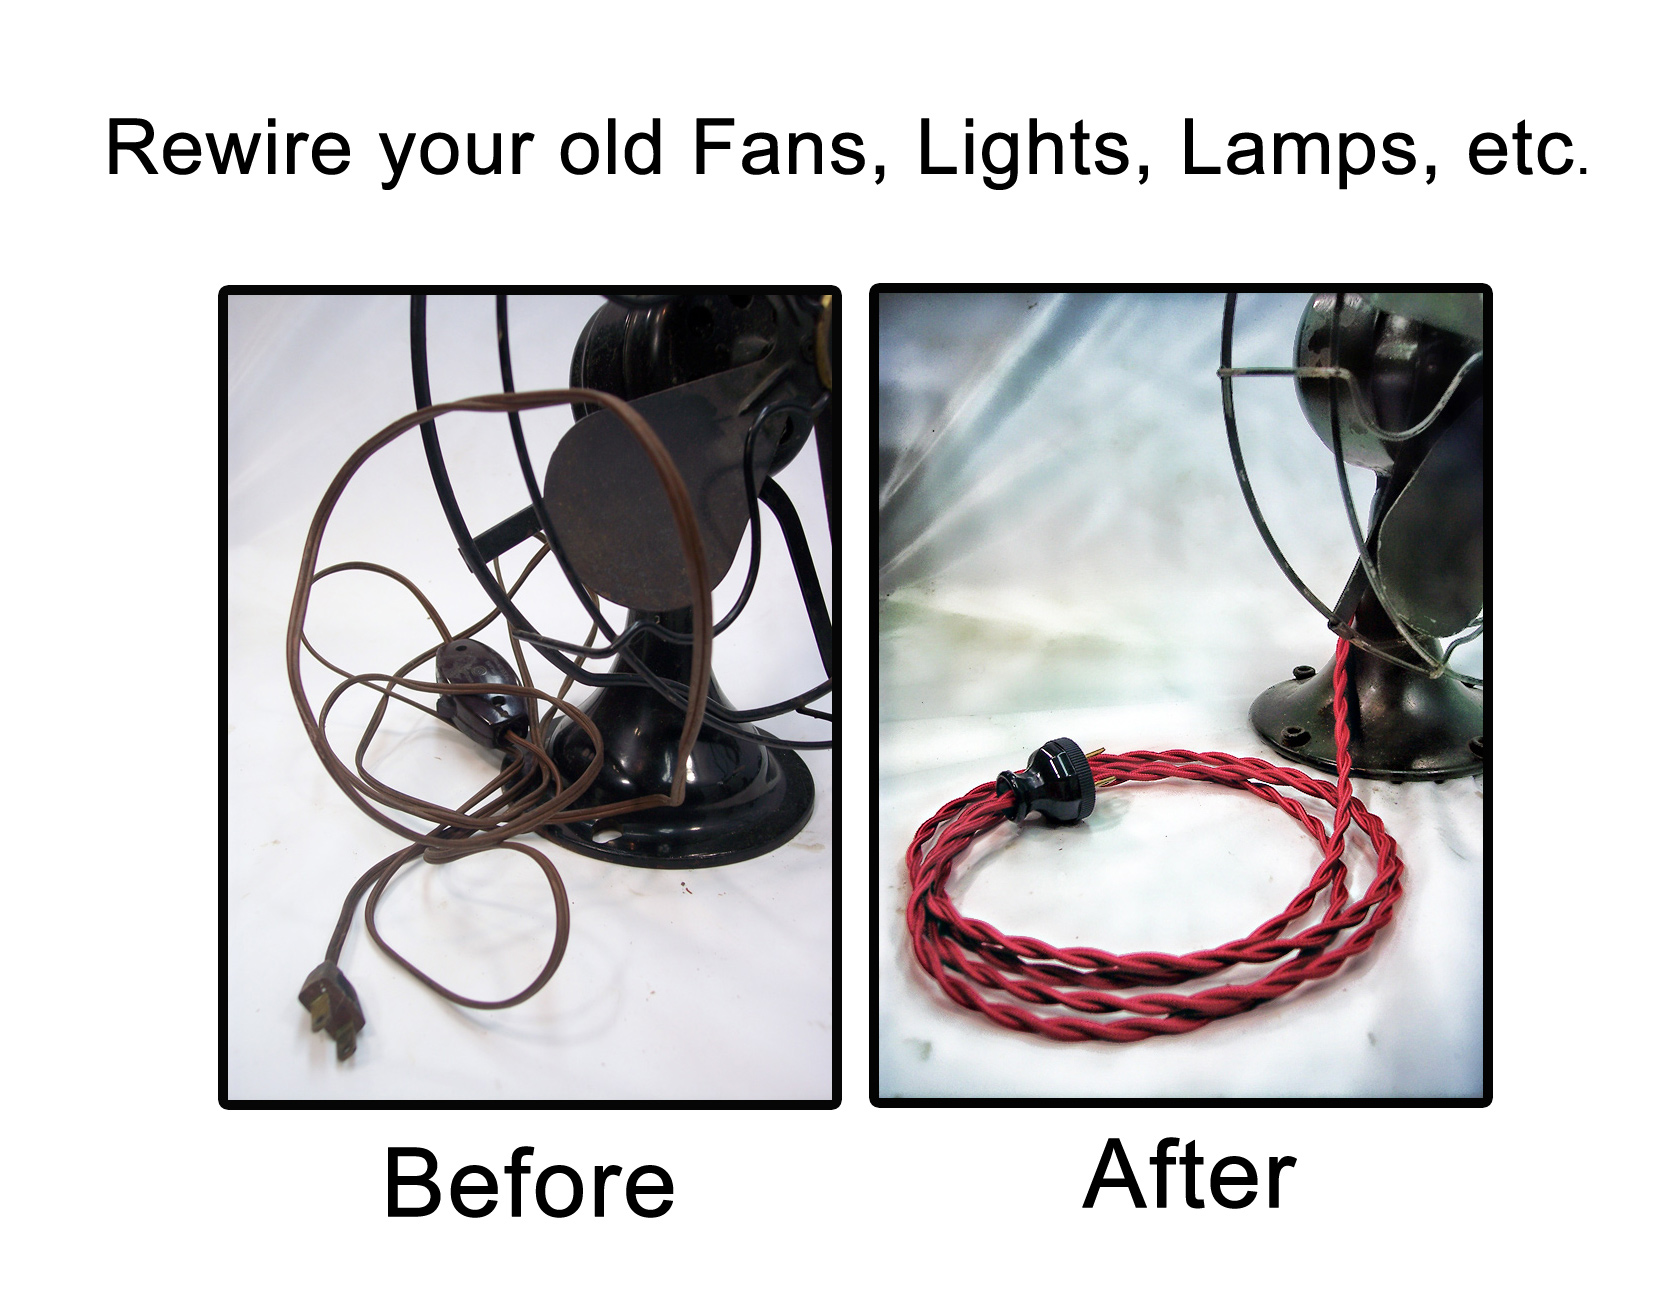 cloth covered rewire kits for lamp fan restorations rh vintagewireandsupply com rewiring old table lamps Lamp Rewiring Kit Lowe's